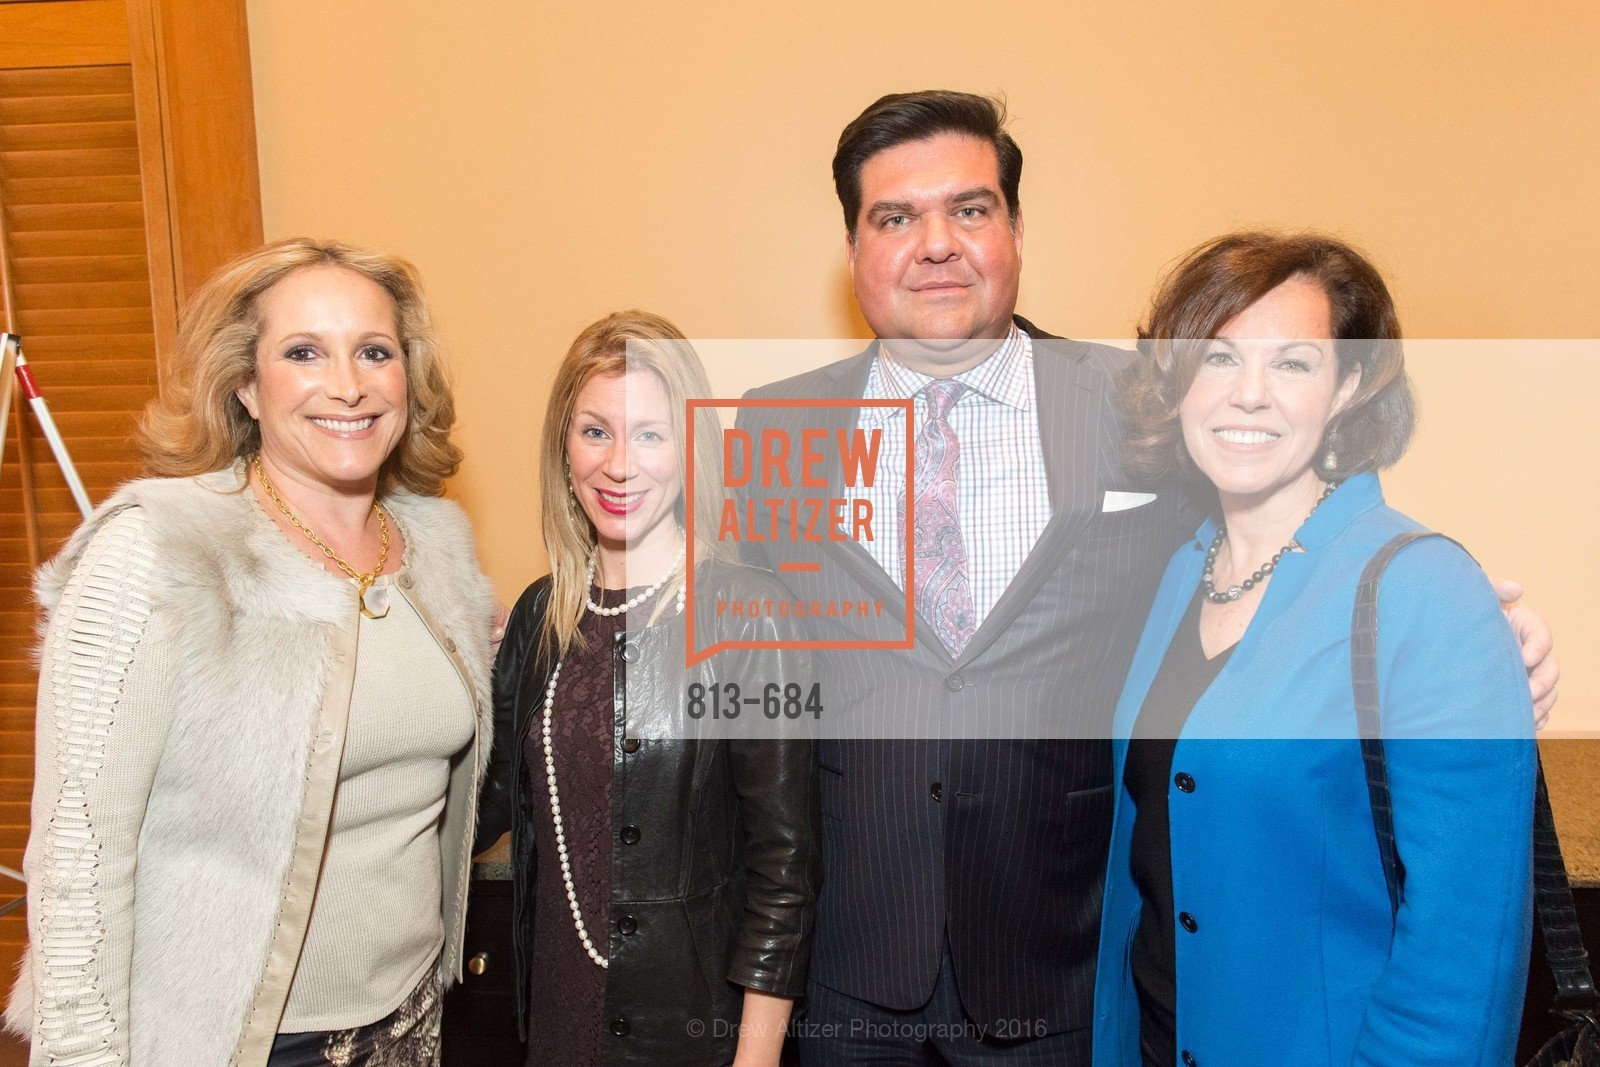 Lorre Erlick, Noelle von Tesmar, Eric Rodriguez, Charlene Cogan, Under One Umbrella, Sharon Heights Golf and Country Club, January 13th, 2016,Drew Altizer, Drew Altizer Photography, full-service agency, private events, San Francisco photographer, photographer california